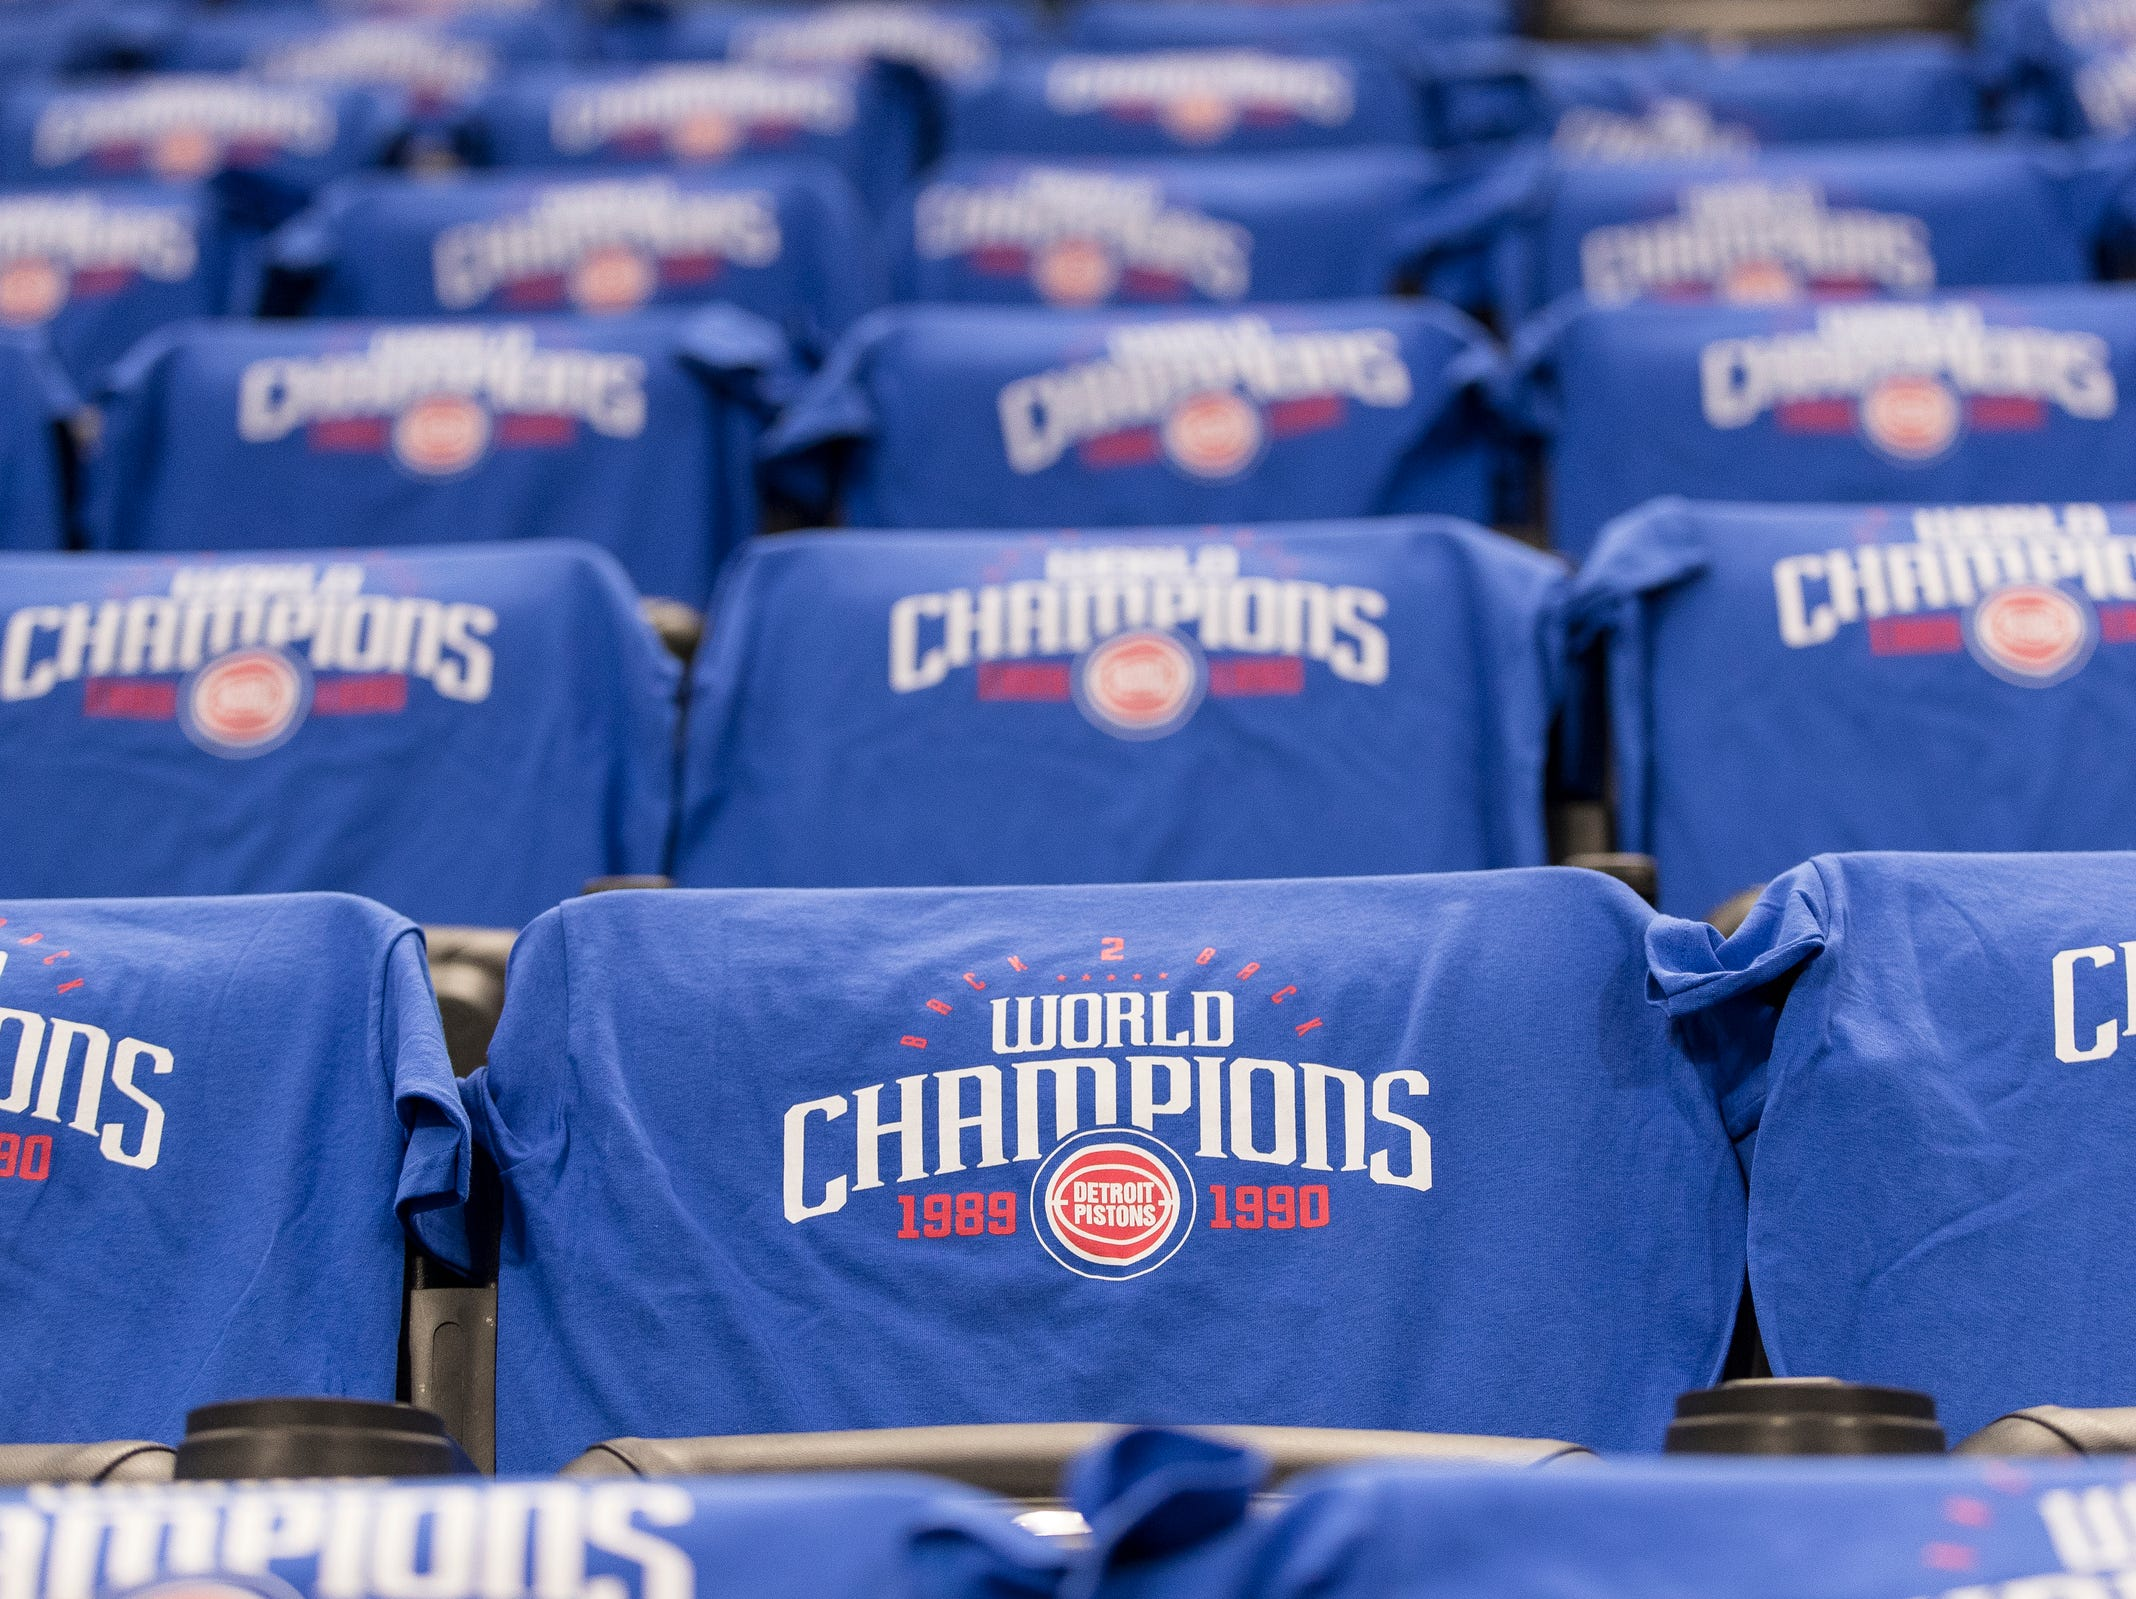 Commemorative give away t-shirts for fans to honor the 1989-90 NBA championship at the Little Caesars Arena in Detroit, Saturday, March 30, 2019.